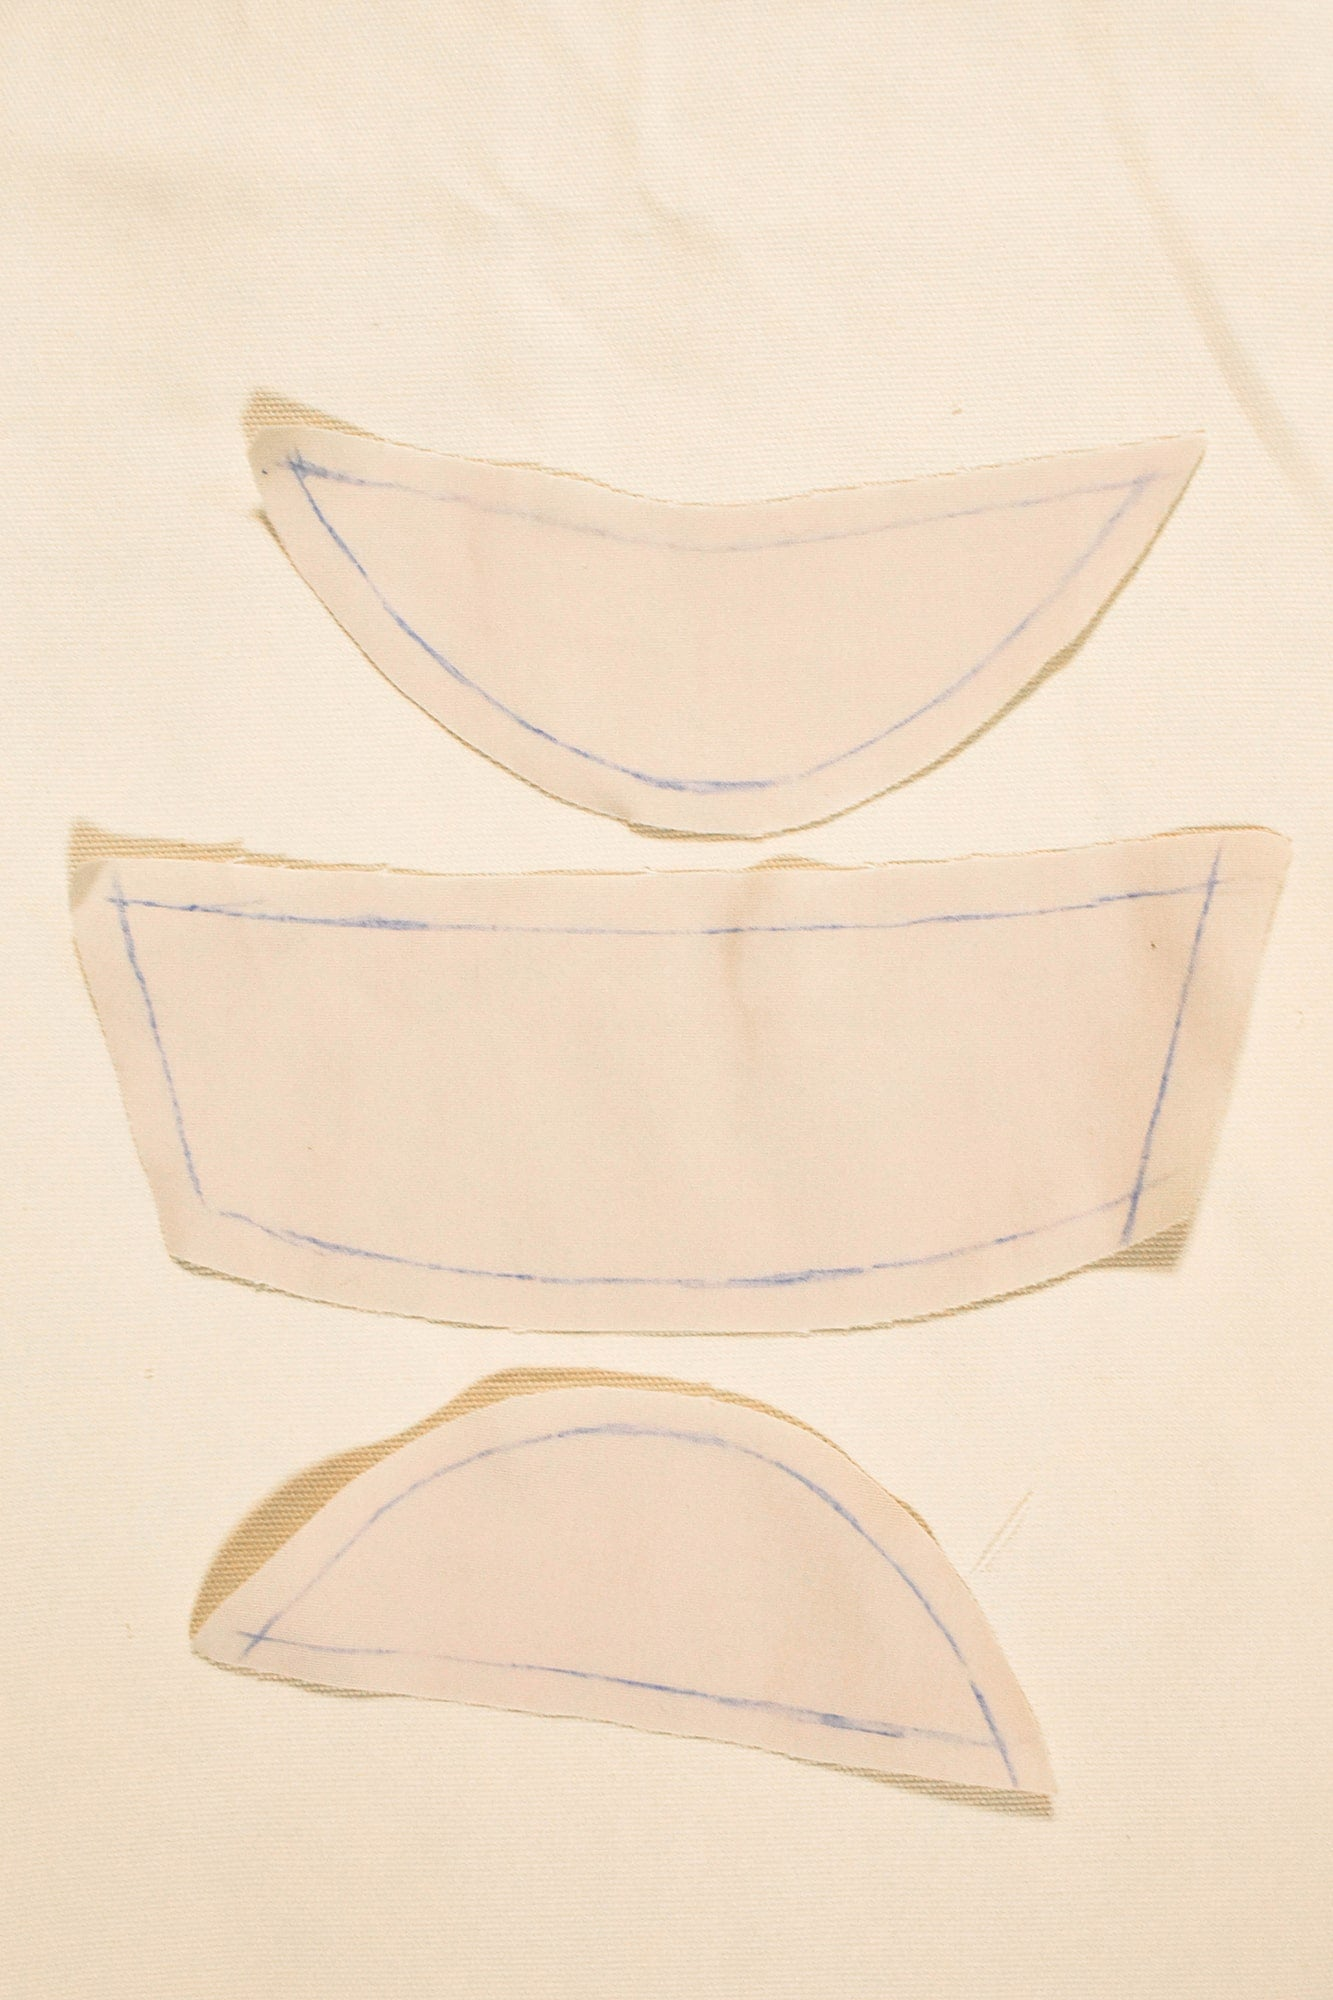 Cut out the pieces with seam allowance according to the pattern to make the inner layer of the mask  | How to make a face mask | Sewing project © Singer® Hong Kong